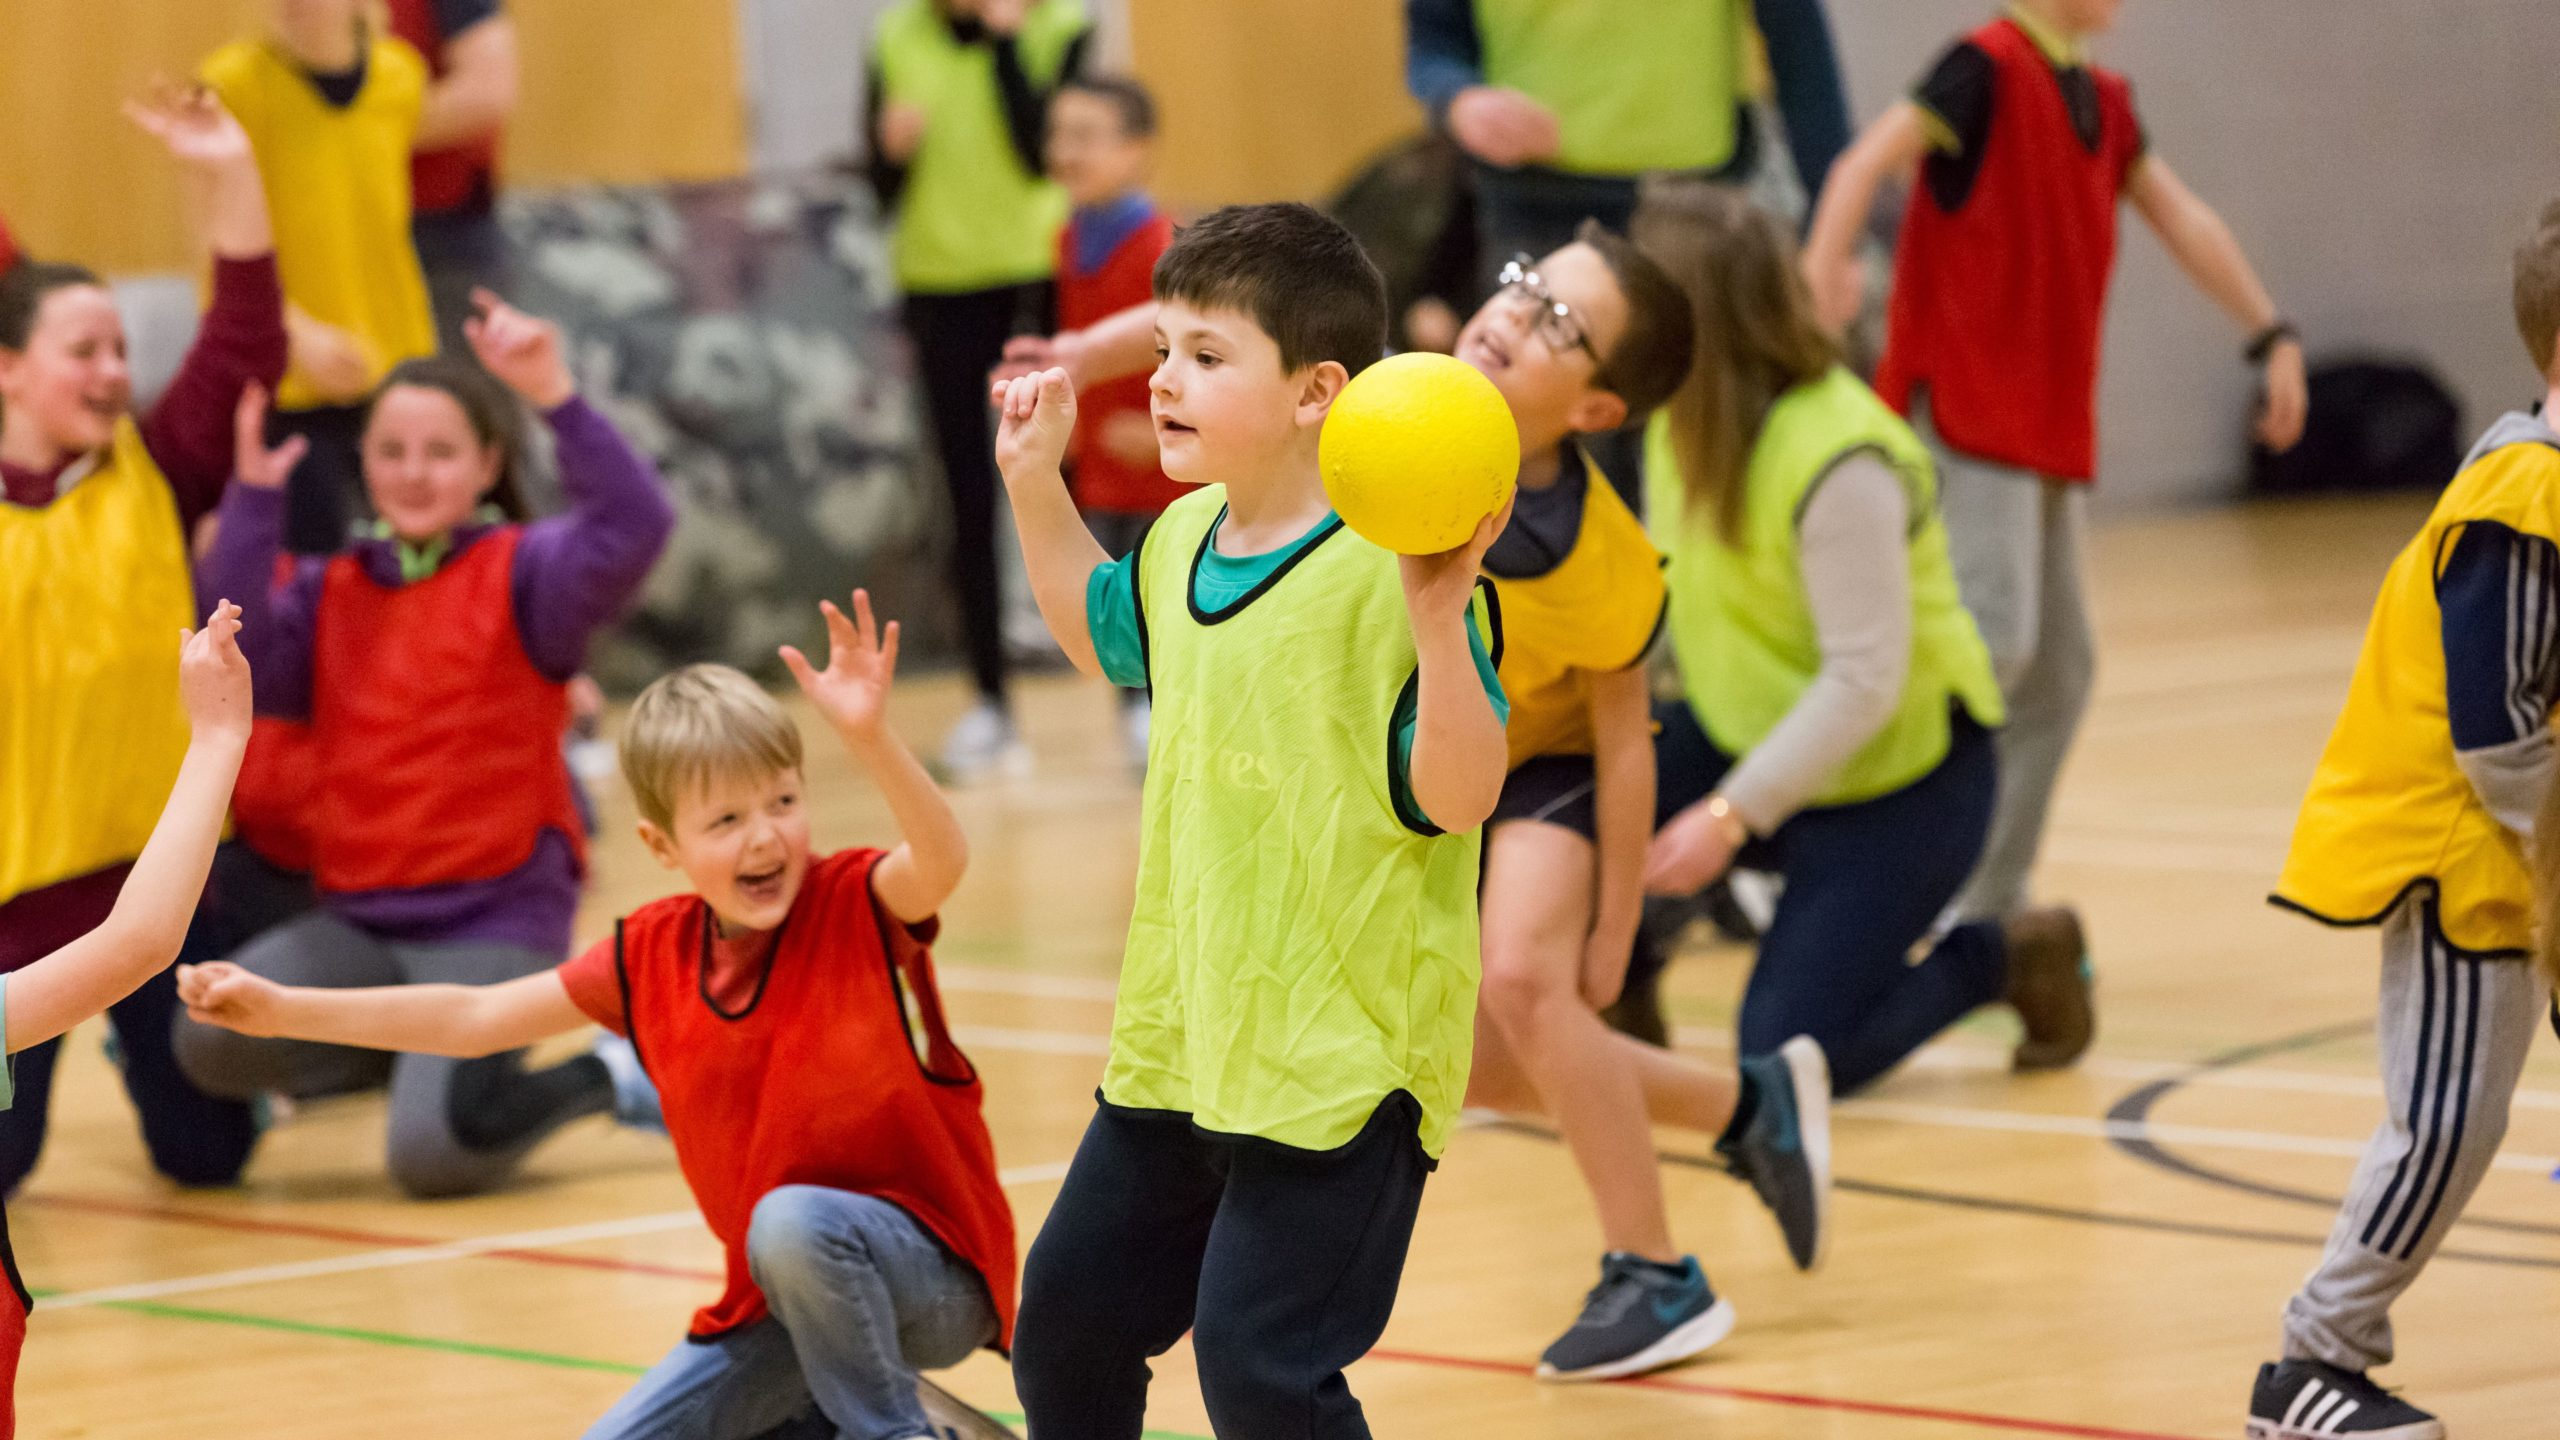 Dodgeball Party at Malden Leisure Centre